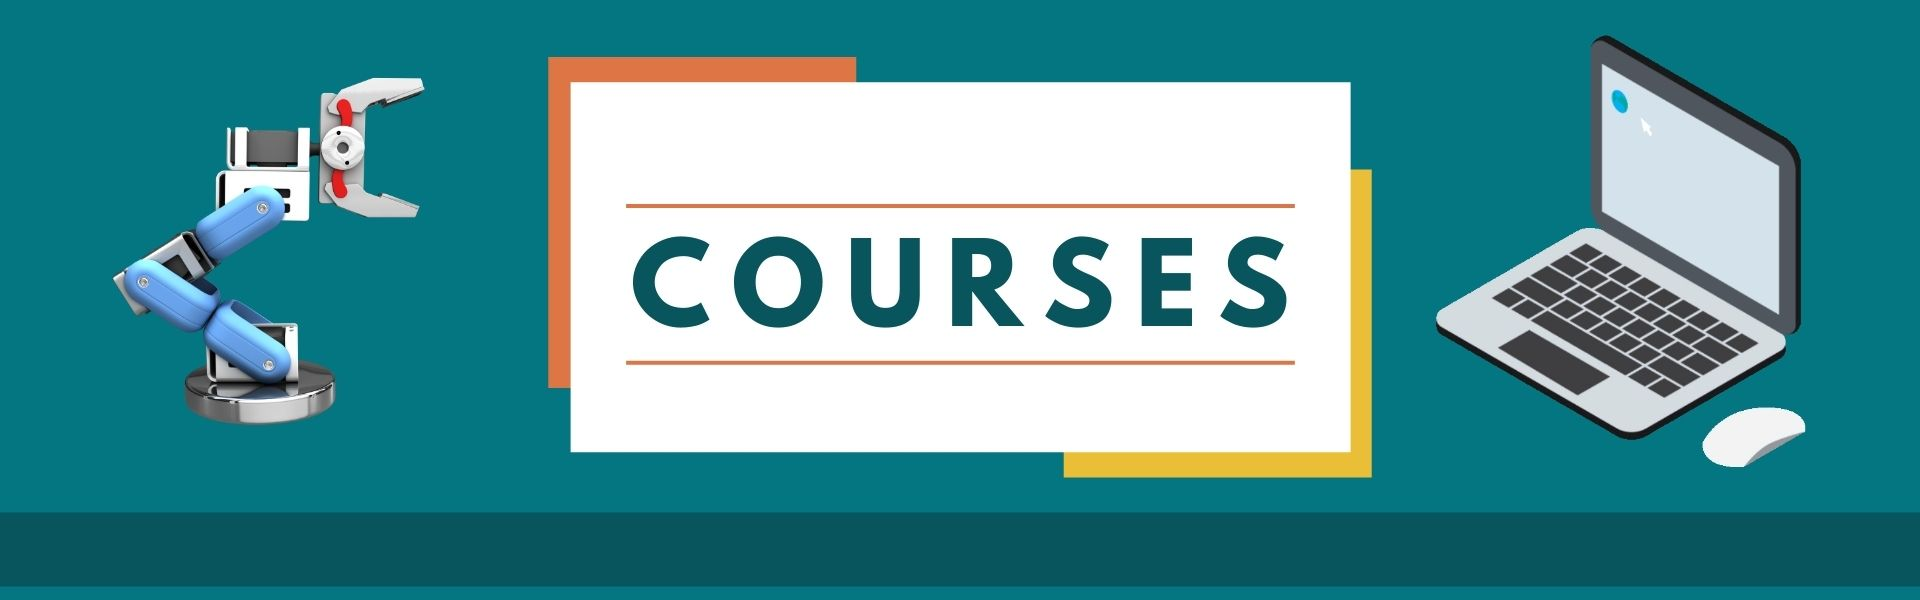 https://leapcoderz.com/our-courses/